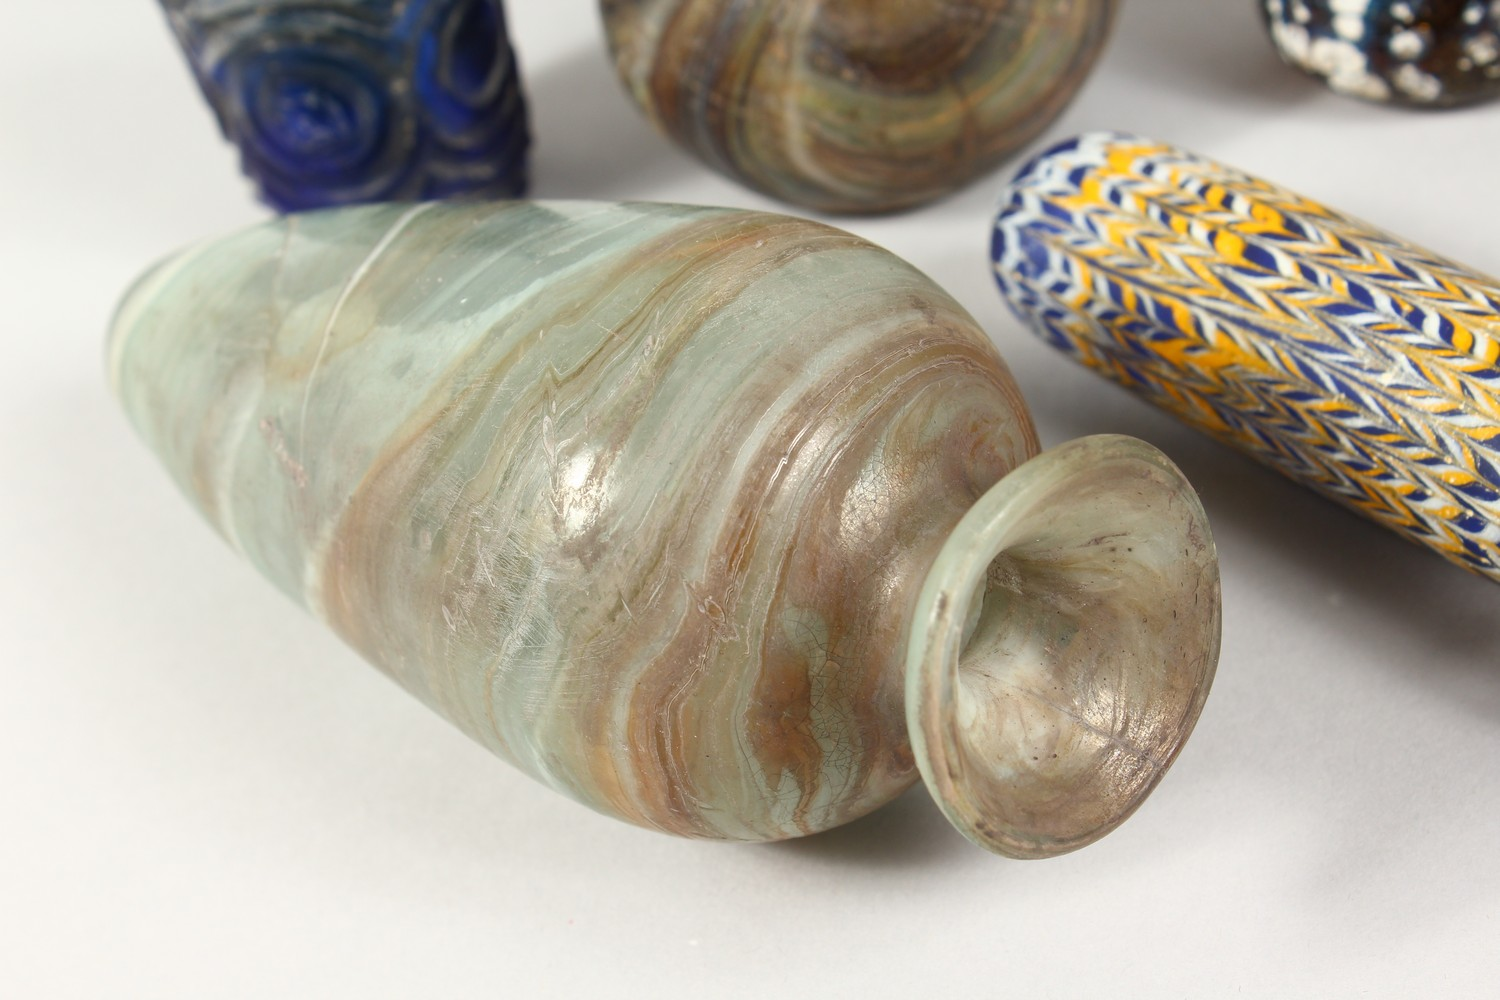 A GROUP OF THIRTEEN ROMAN GLASS BOTTLES AND JARS, including three tops in the form of heads (13). - Image 11 of 11